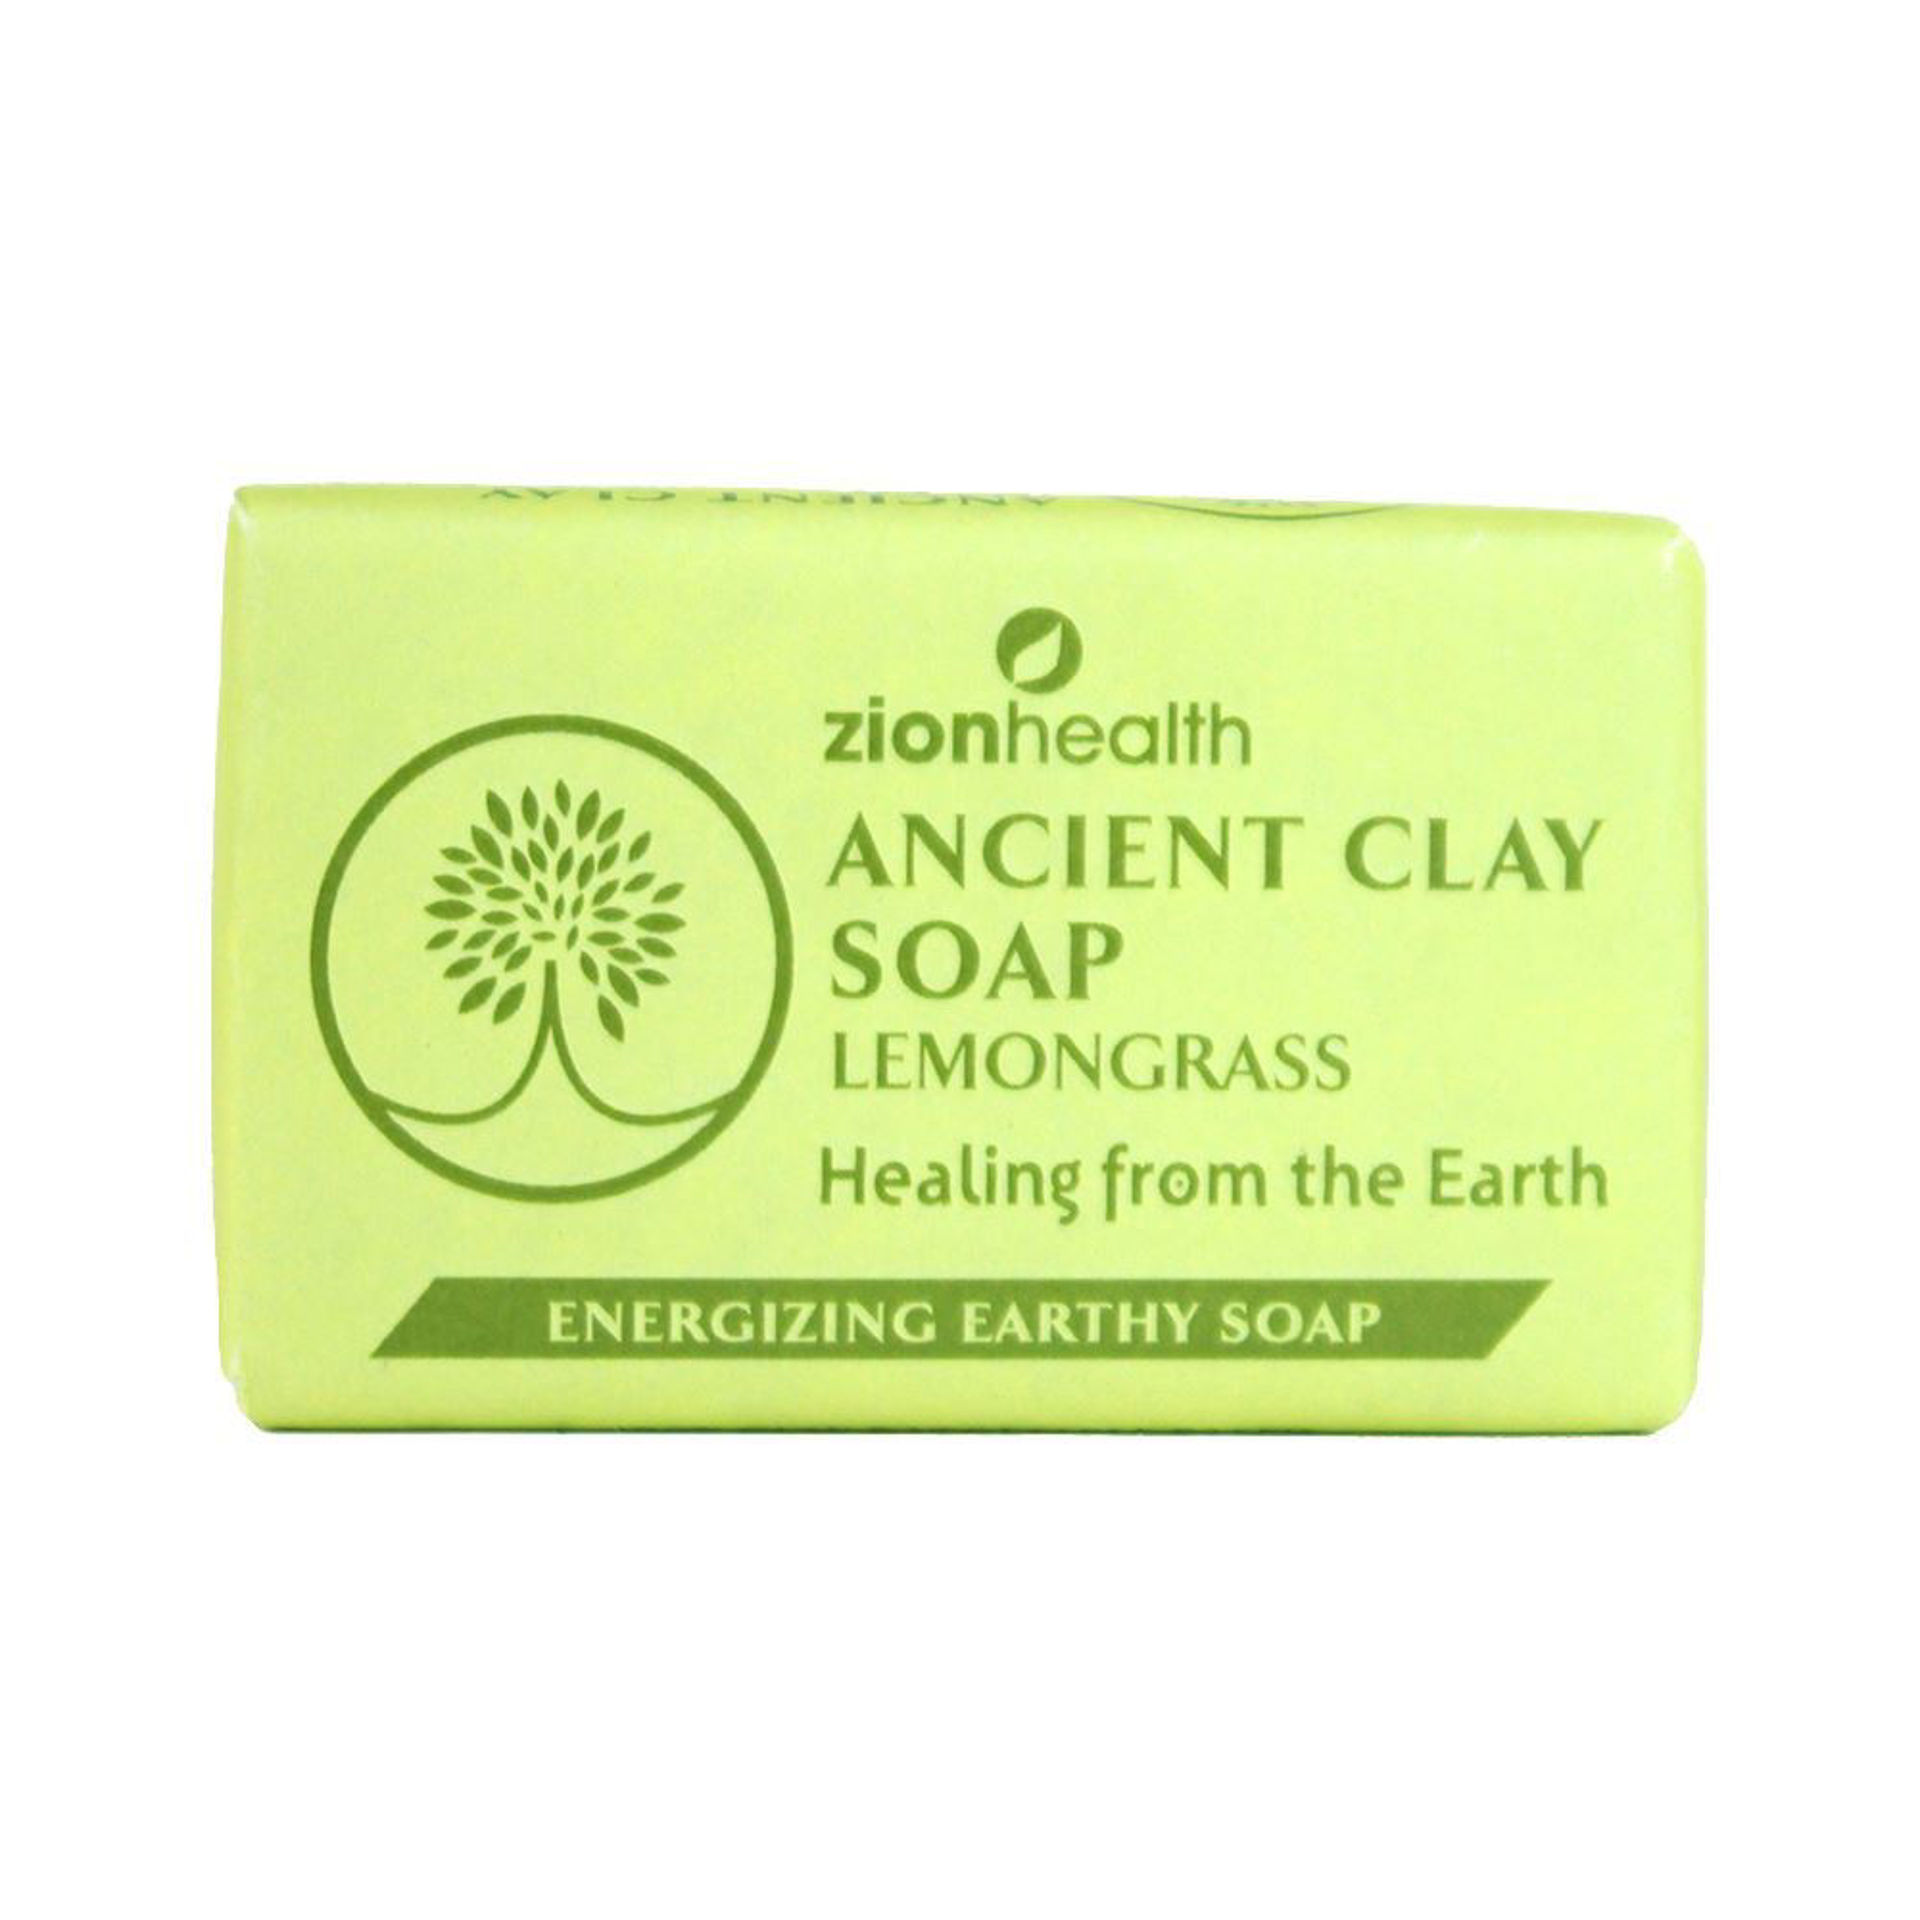 Picture of Lemongrass Ancient Clay Soap - 6 oz.